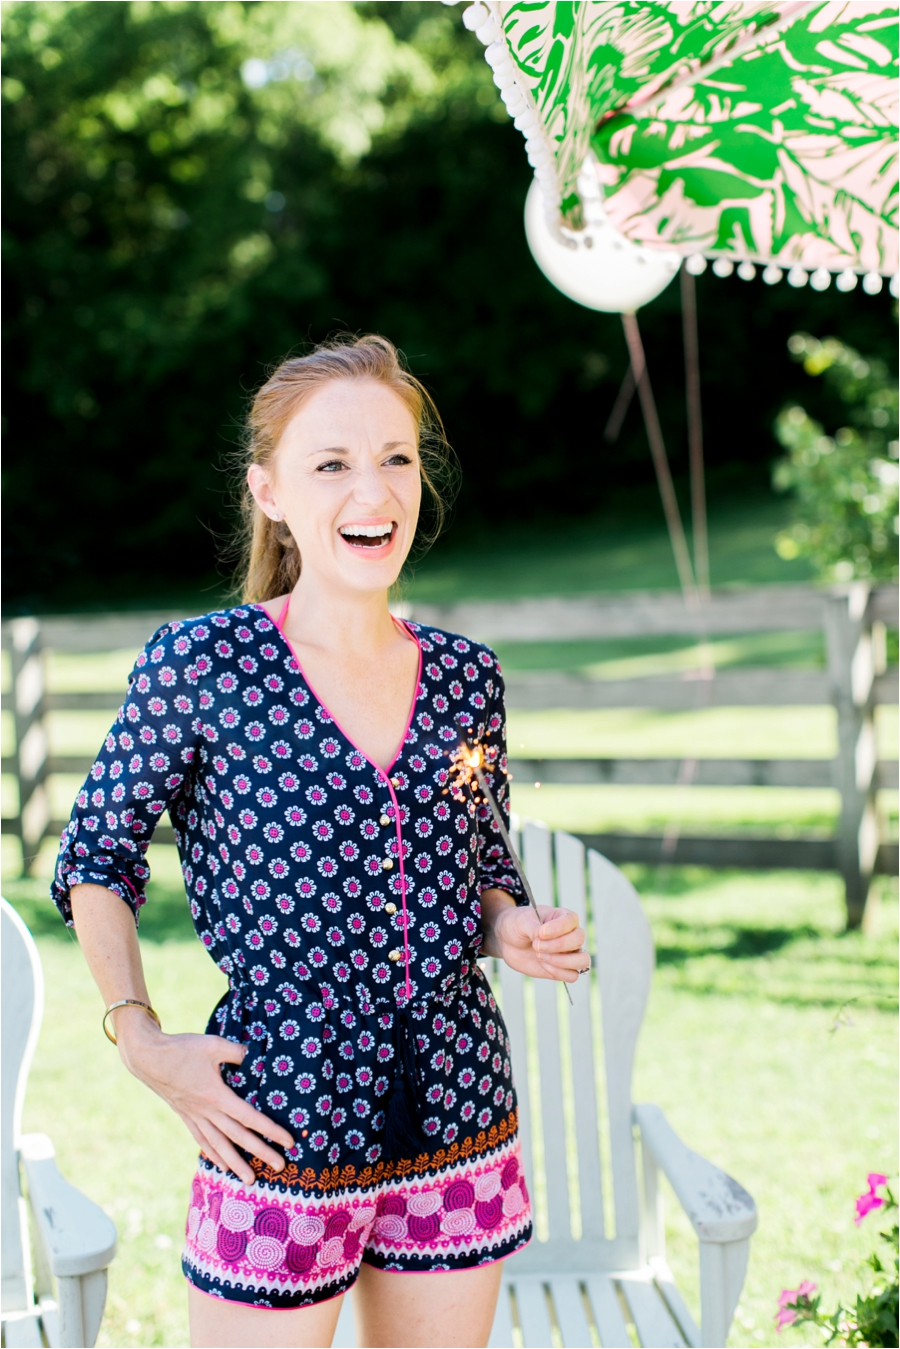 draper james summer pool party editorial by charlottesville photographer, Amy Nicole Photography_0031